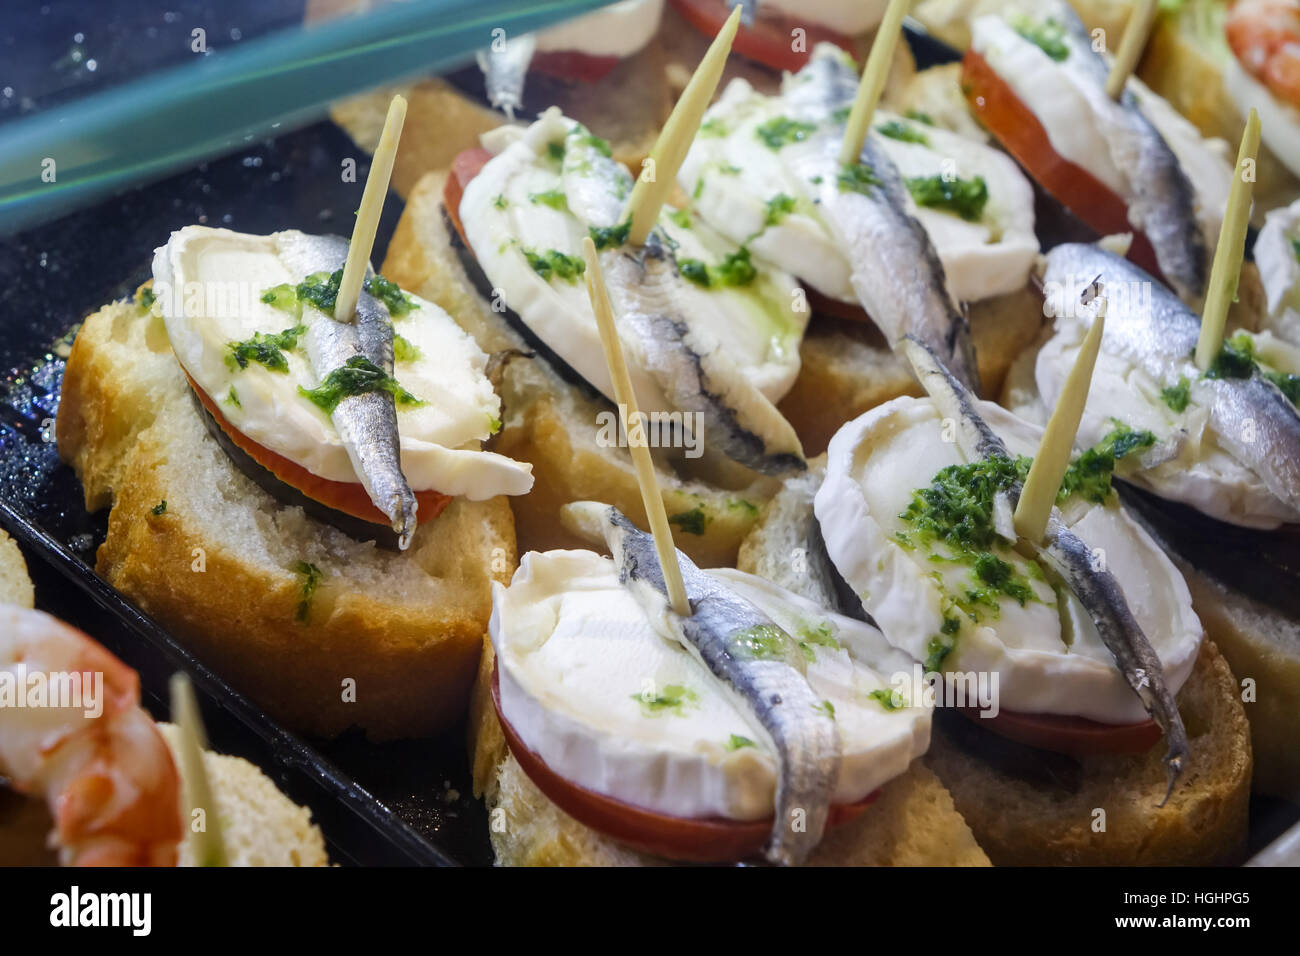 tapas-on-display-in-glass-cases-on-spanish-bar-HGHPG5.jpg